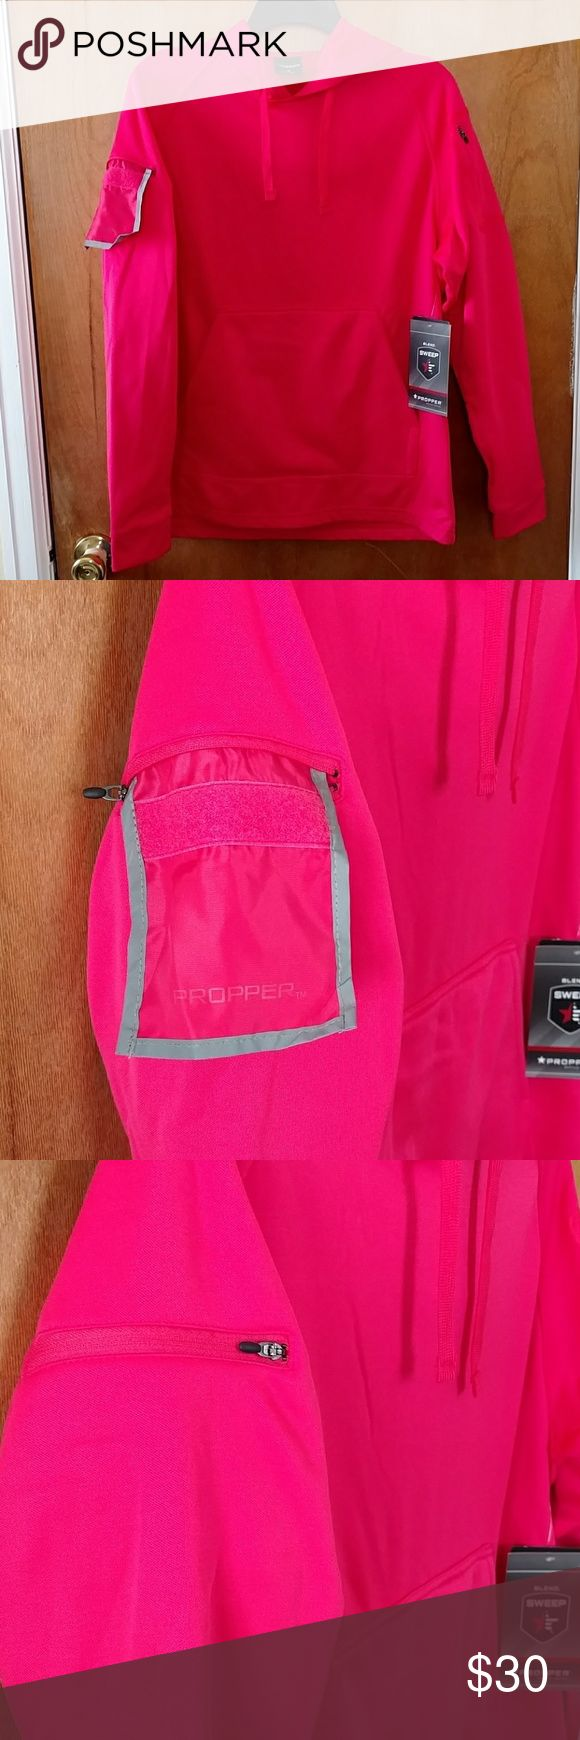 🎆 50% Off! Propper Conceal Carry Hoodie Hot Pink Use the offer button to only pay 50%! See my sale listing for more details.  Hot pink conceal carry hoodie by Propper. Marsupial pocket has two magnetic openings to discretely retrieve your concealed firearm. Right arm features a pull out ID badge panel which can be zipped closed. Left arm has two zipper pockets. Thumb holes, hood and drawstrings. Color is hot pink. Brand new, no flaws. From a smoke free, pet free home. Propper Tops…